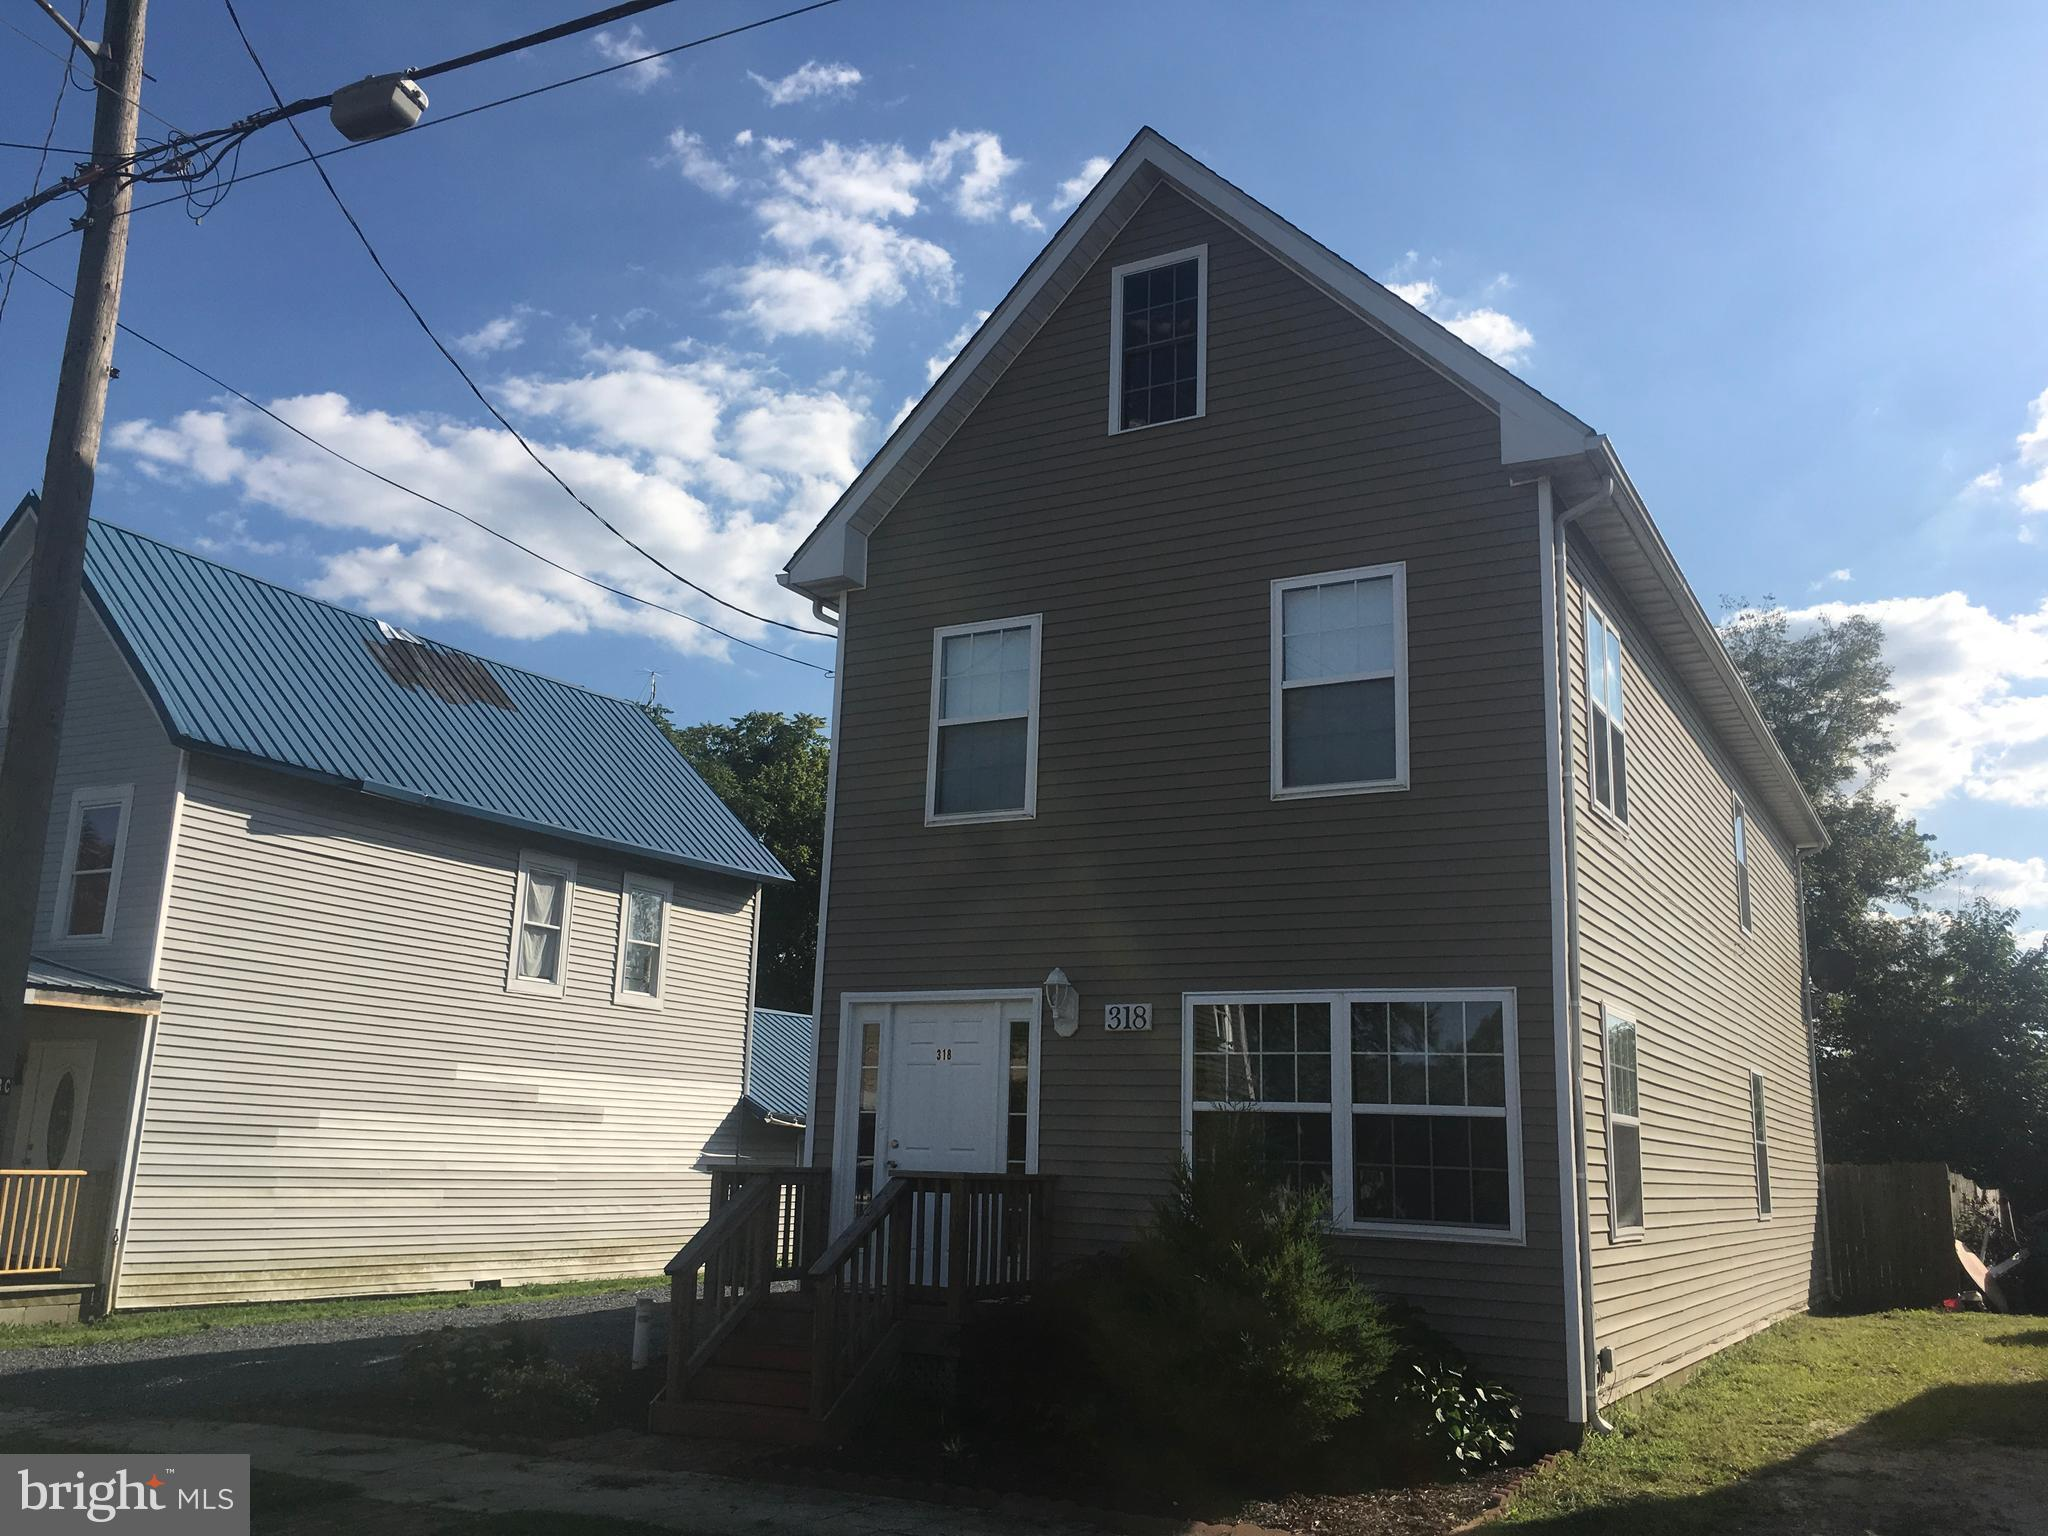 318 MAIN STREET, MARYDEL, MD 21649